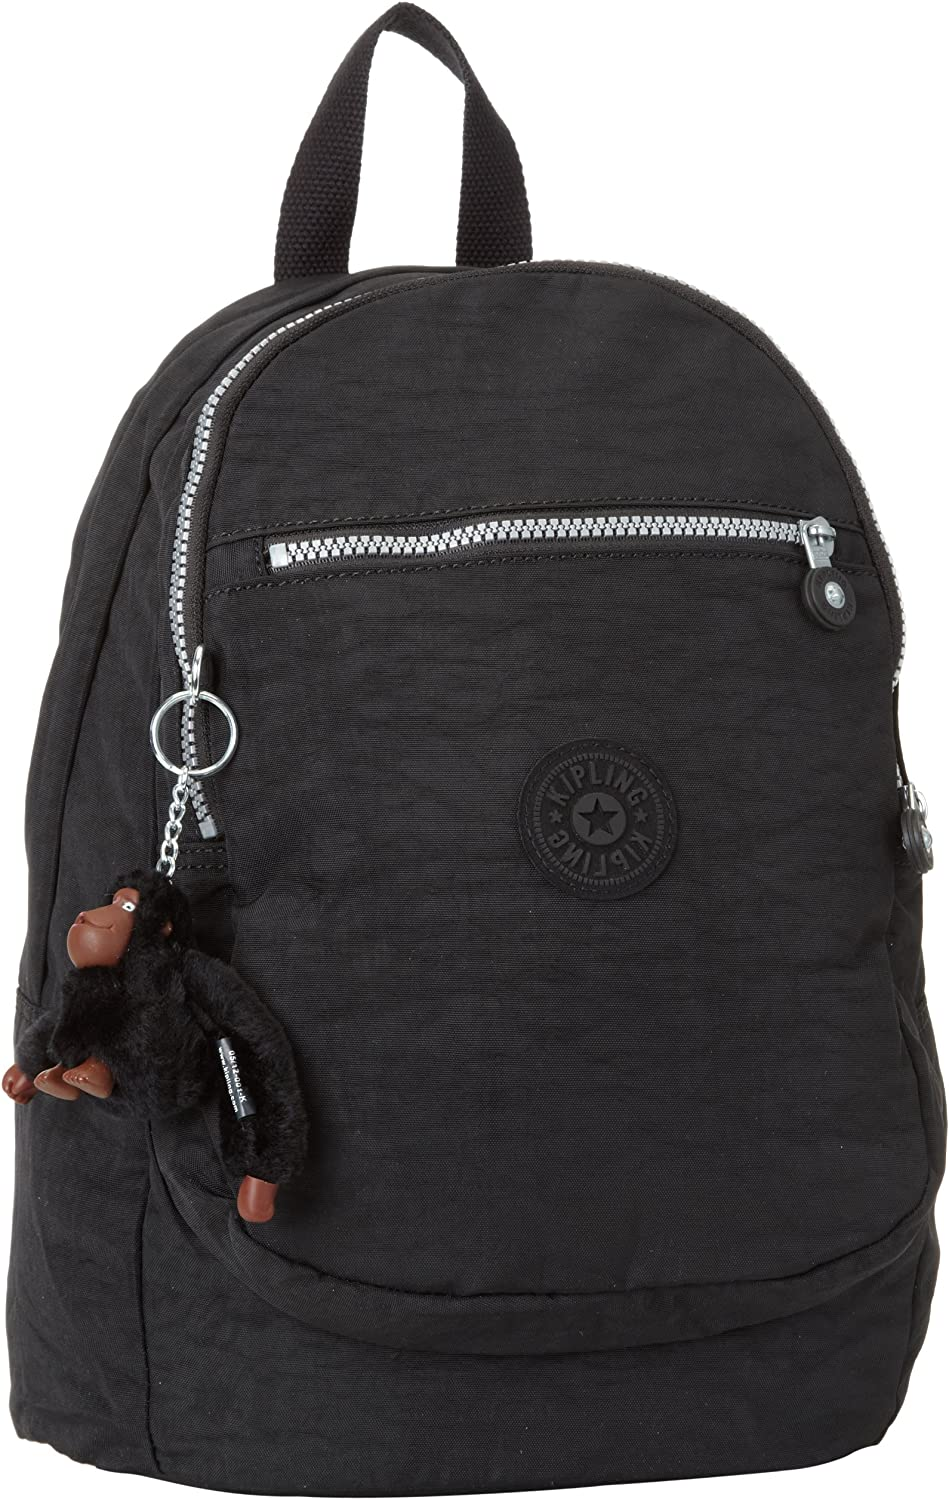 Kipling Challenger II Medium Backpack